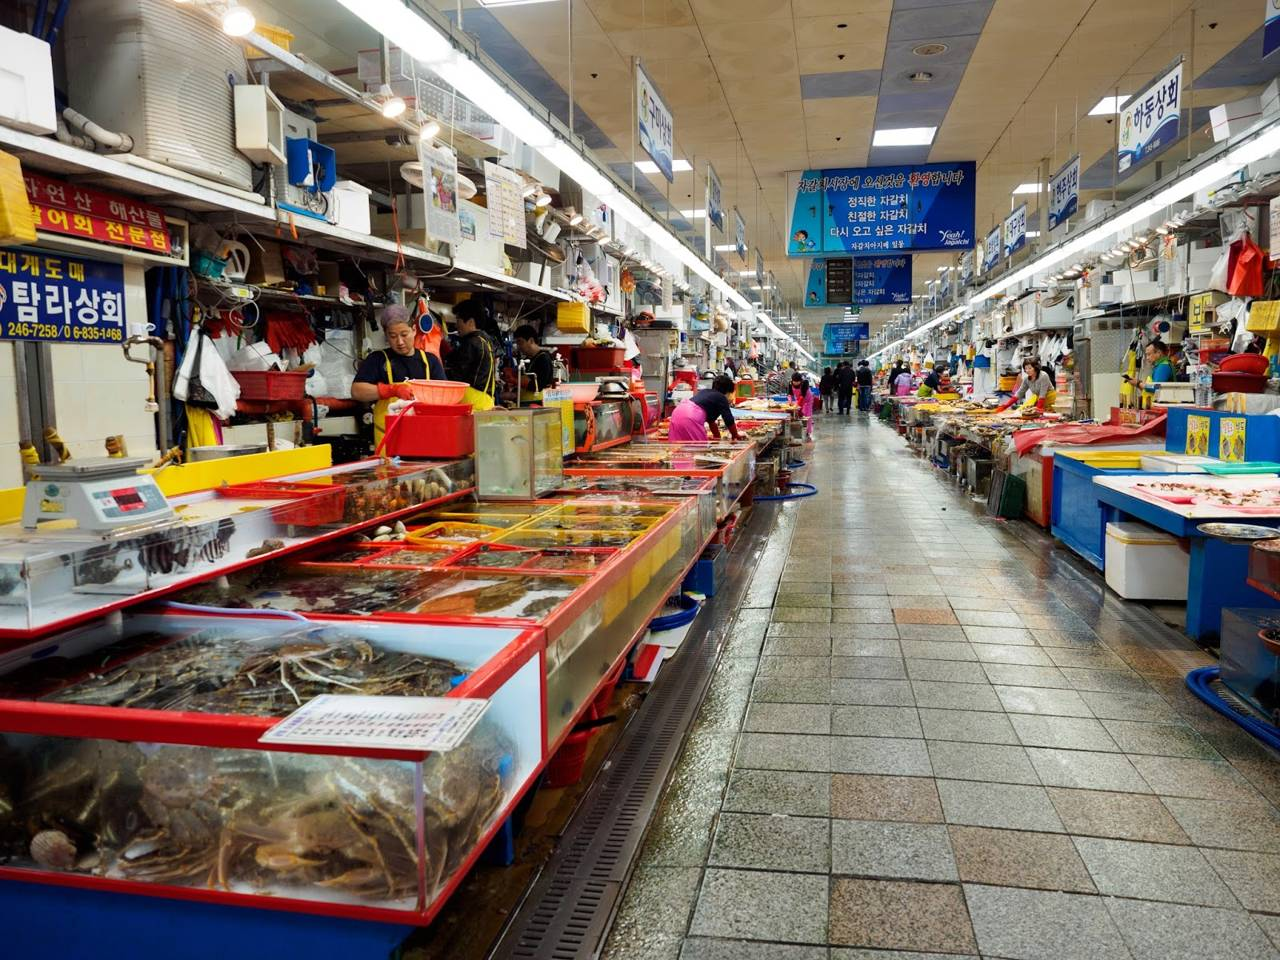 korea busan attraction Jagalchi Fish Market